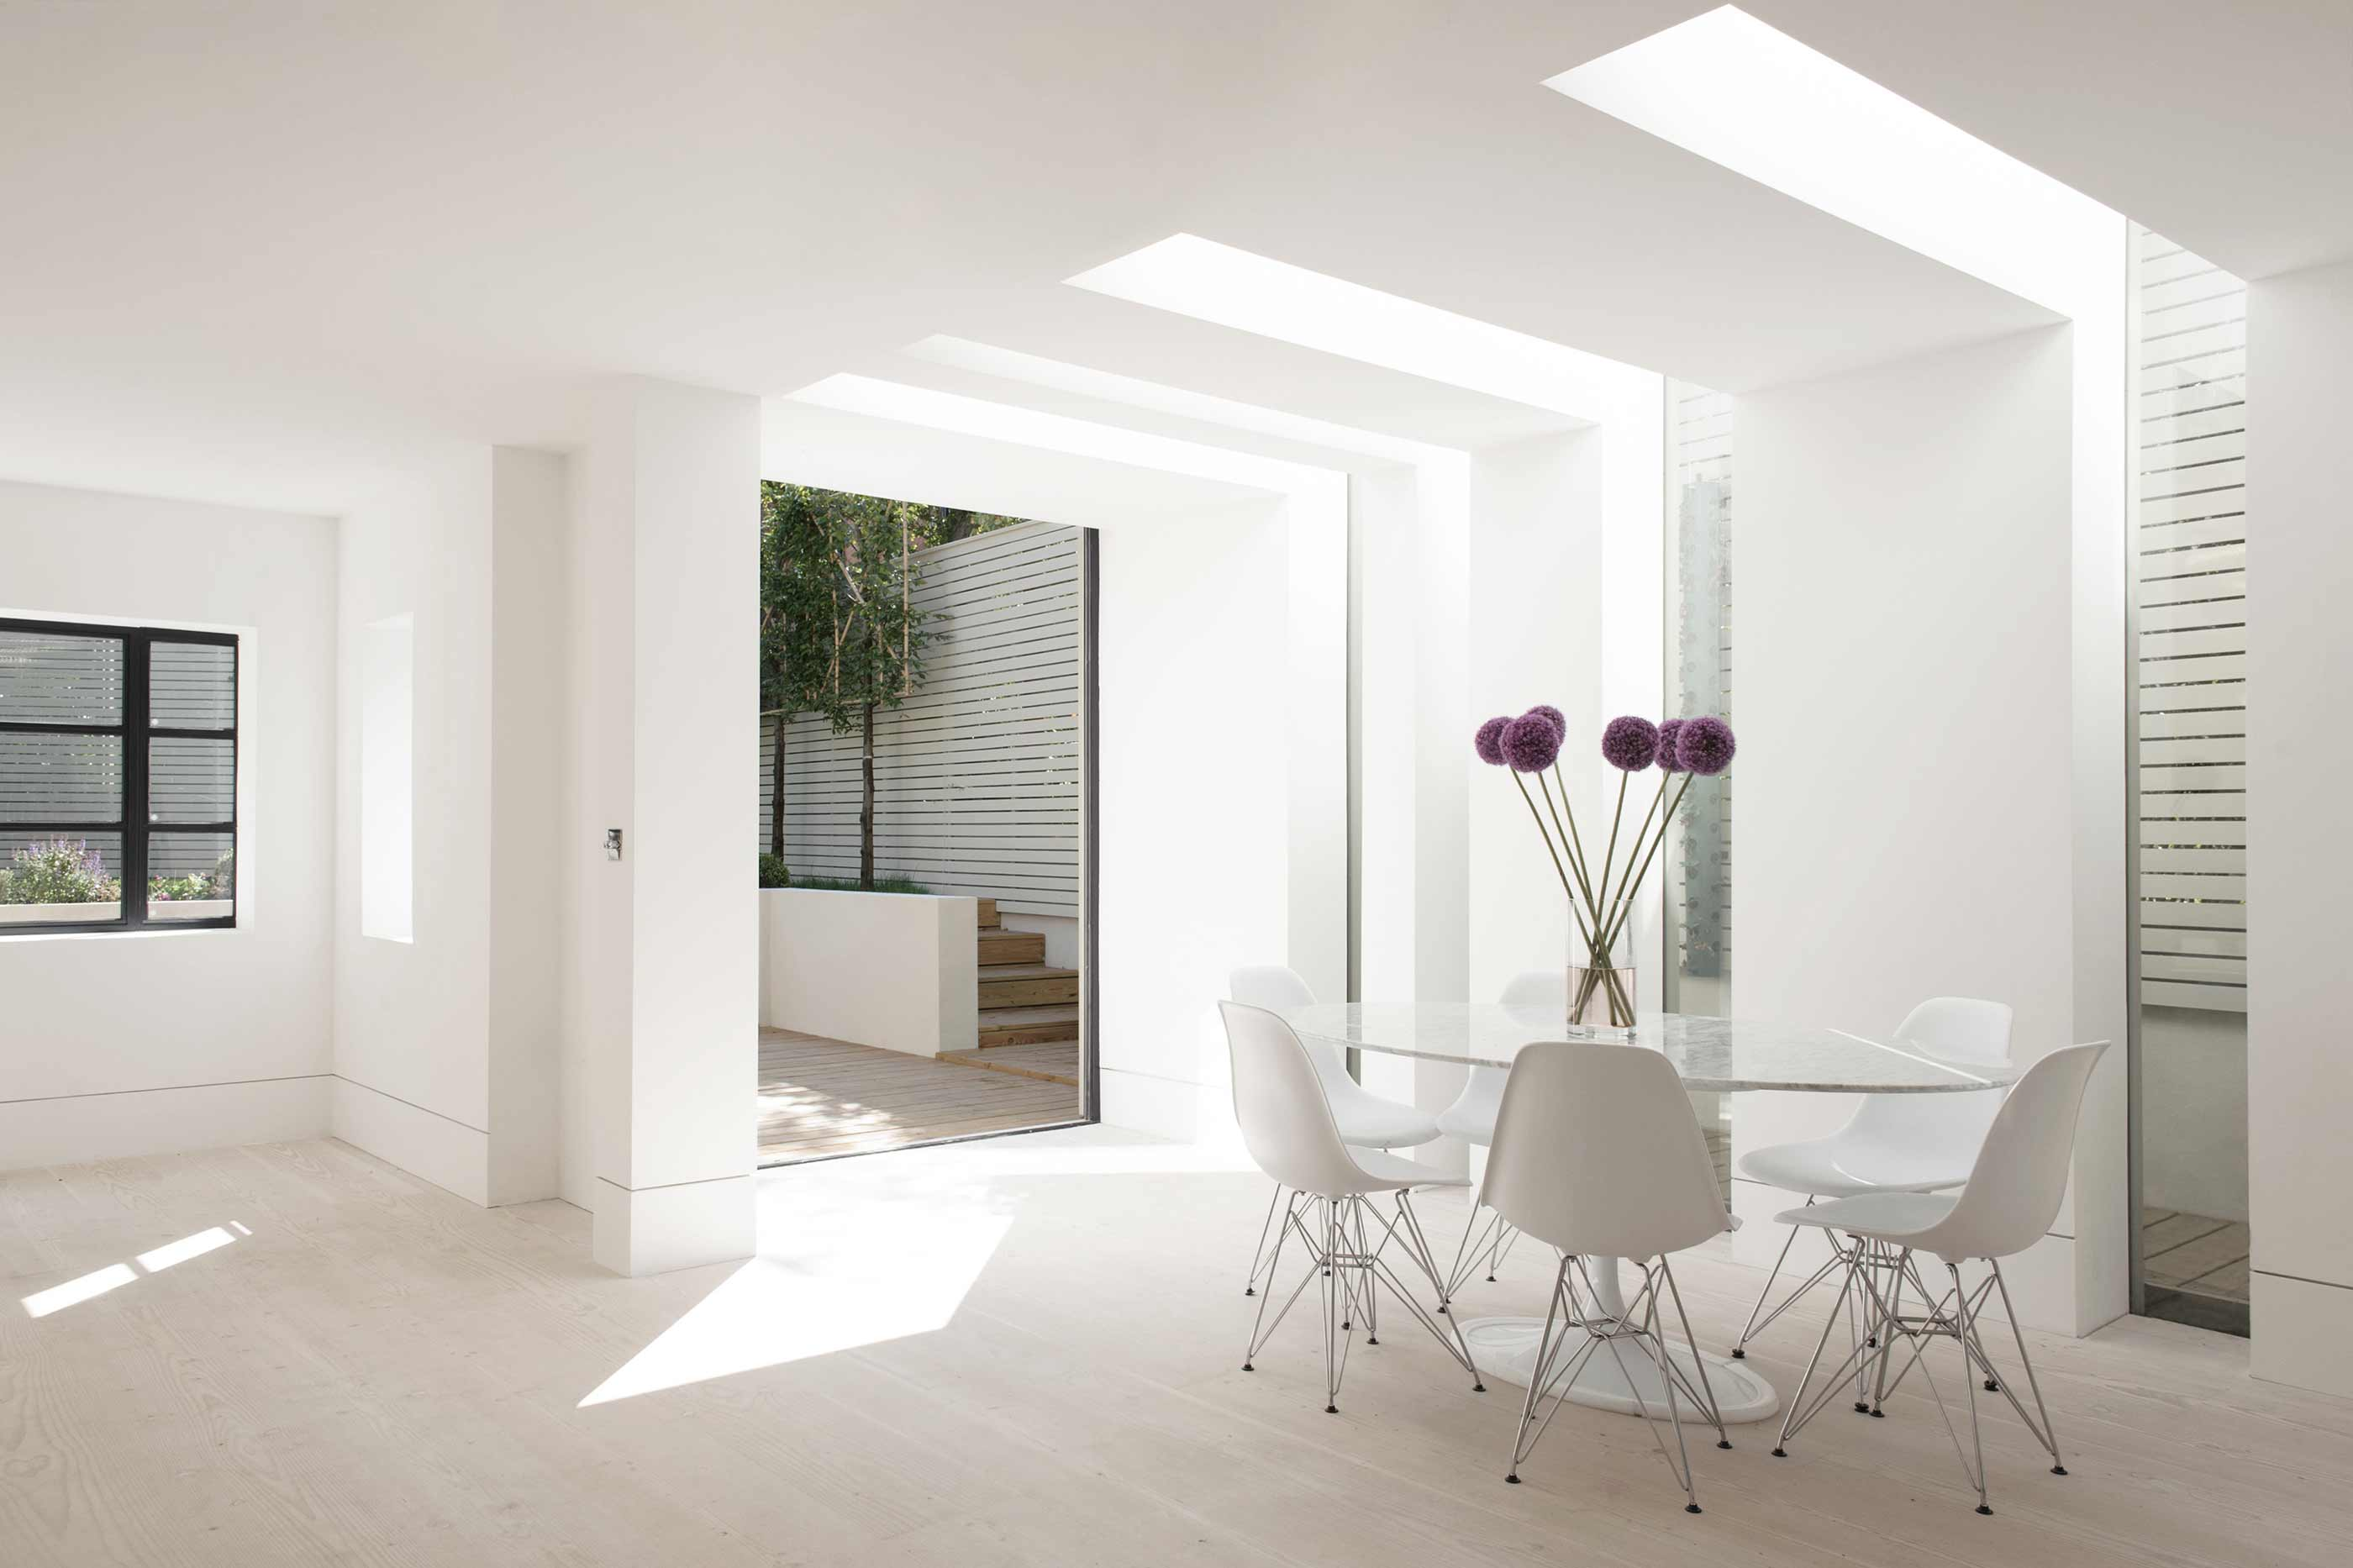 Hampstead Heath - residential house full refurbishment extension glass slots dinesen flooring